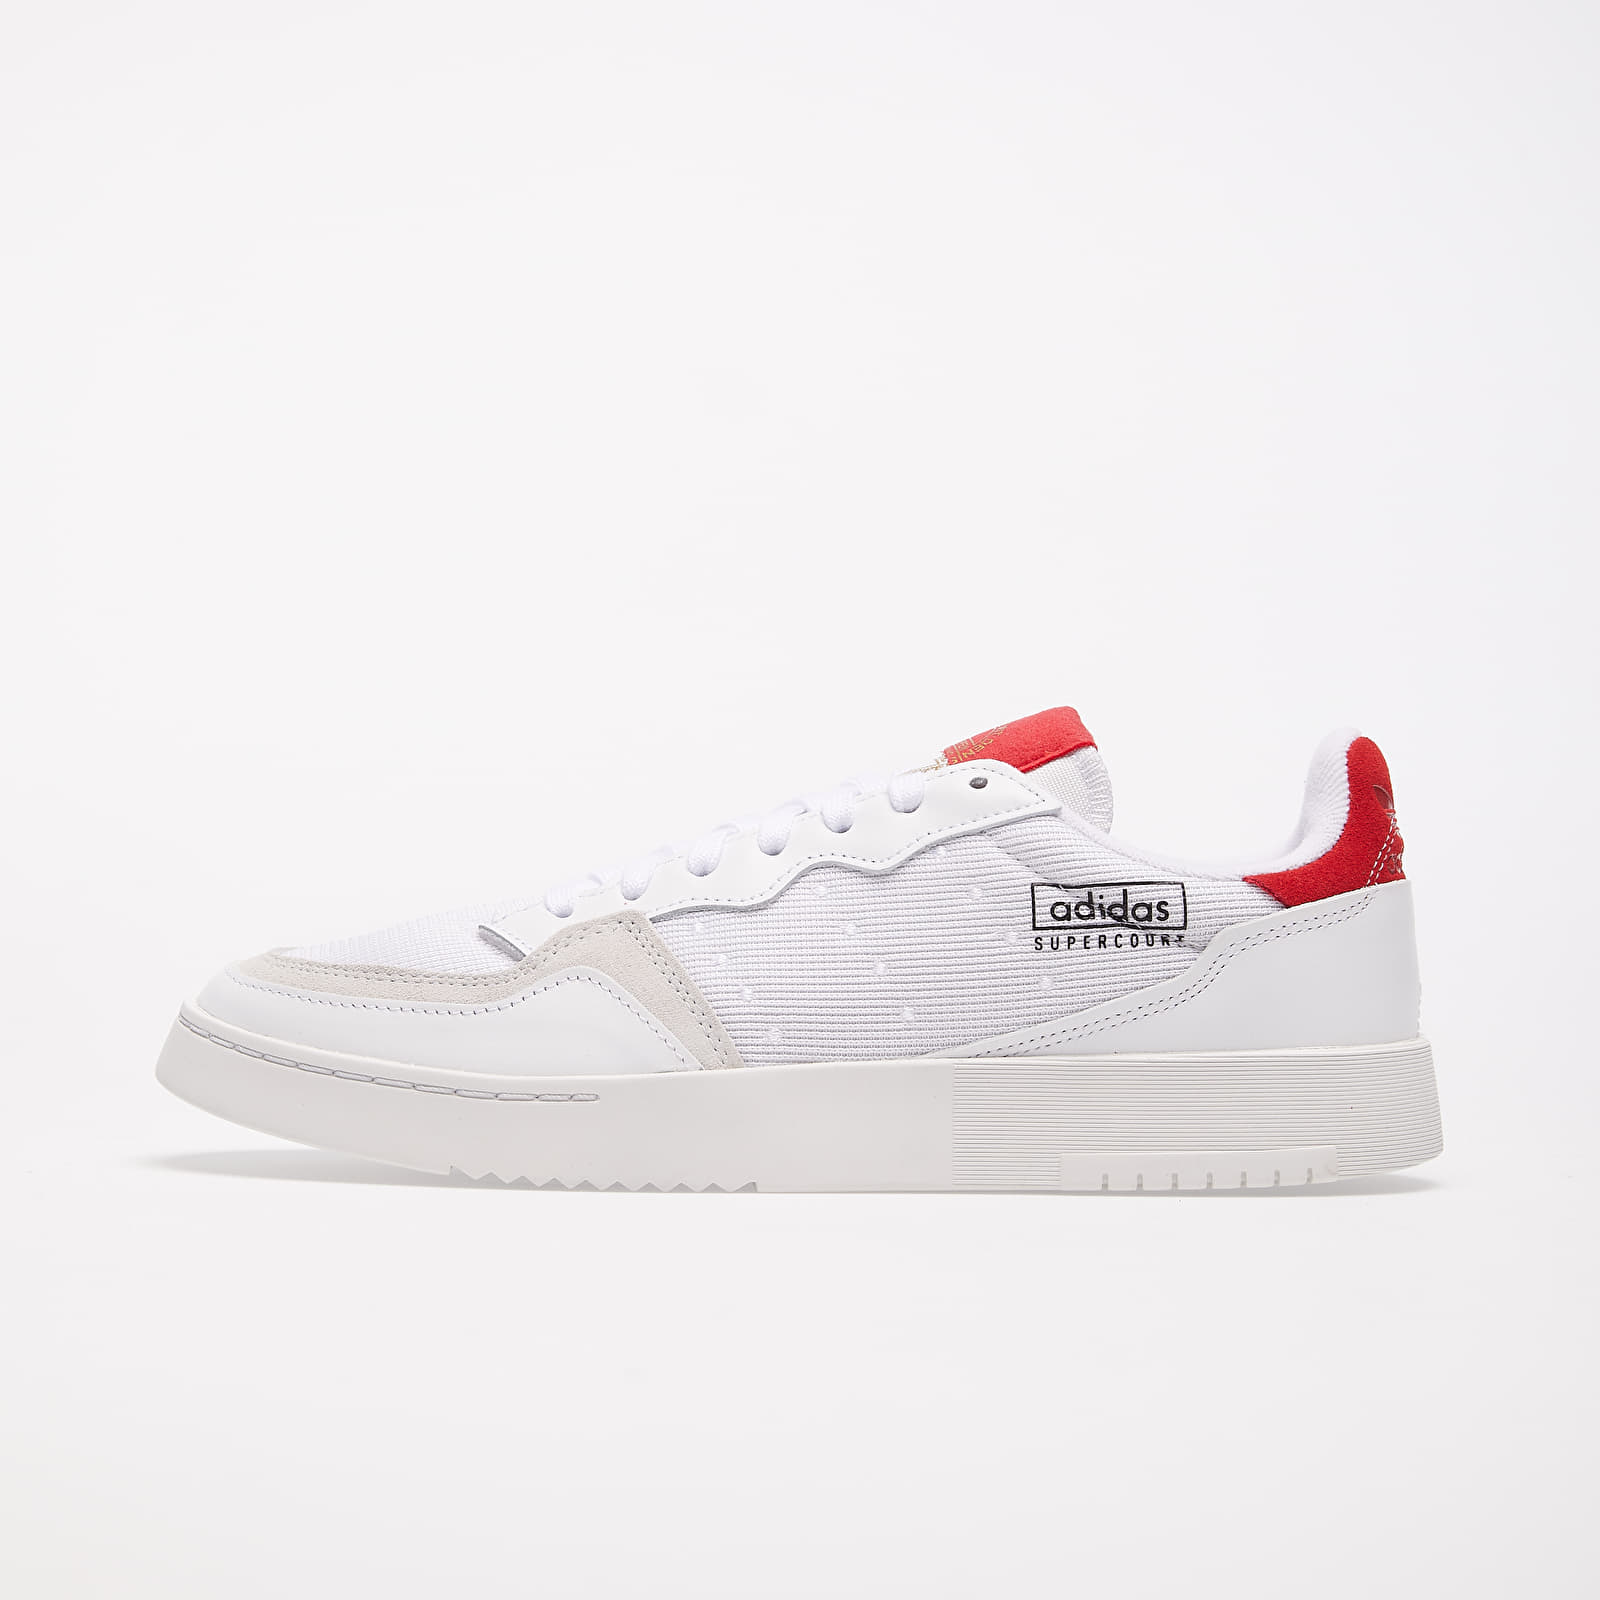 Chaussures et baskets homme adidas Supercourt Ftw White/ Ftw White/ Scarlet